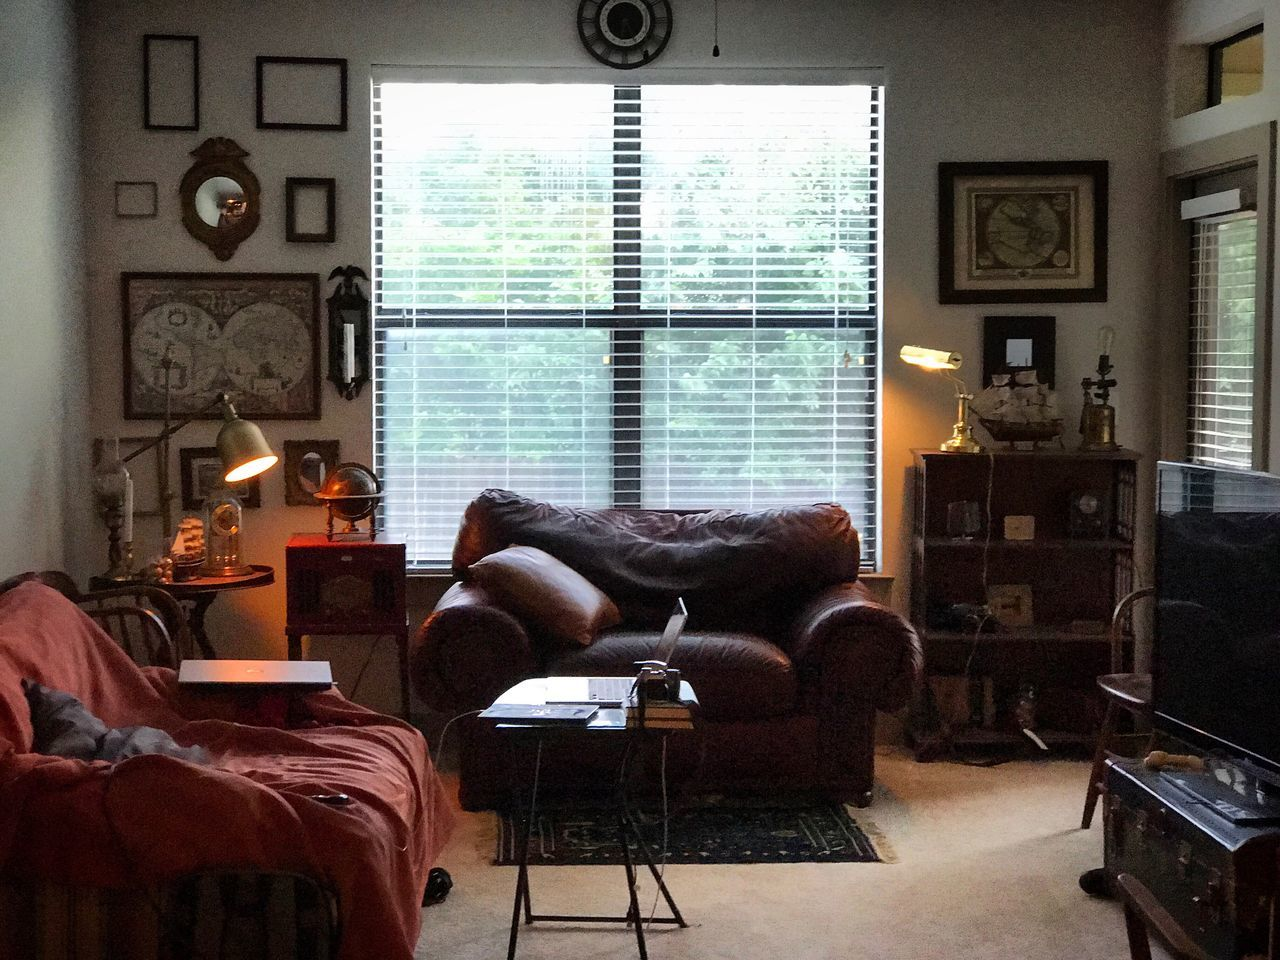 My Thinkery Box 💡 Chair Indoors  Sofa Home Interior Window Table Living Room Armchair Furniture No People Home Showcase Interior Seat Day Vintage Steampunk EyeEm Best Shots Check This Out